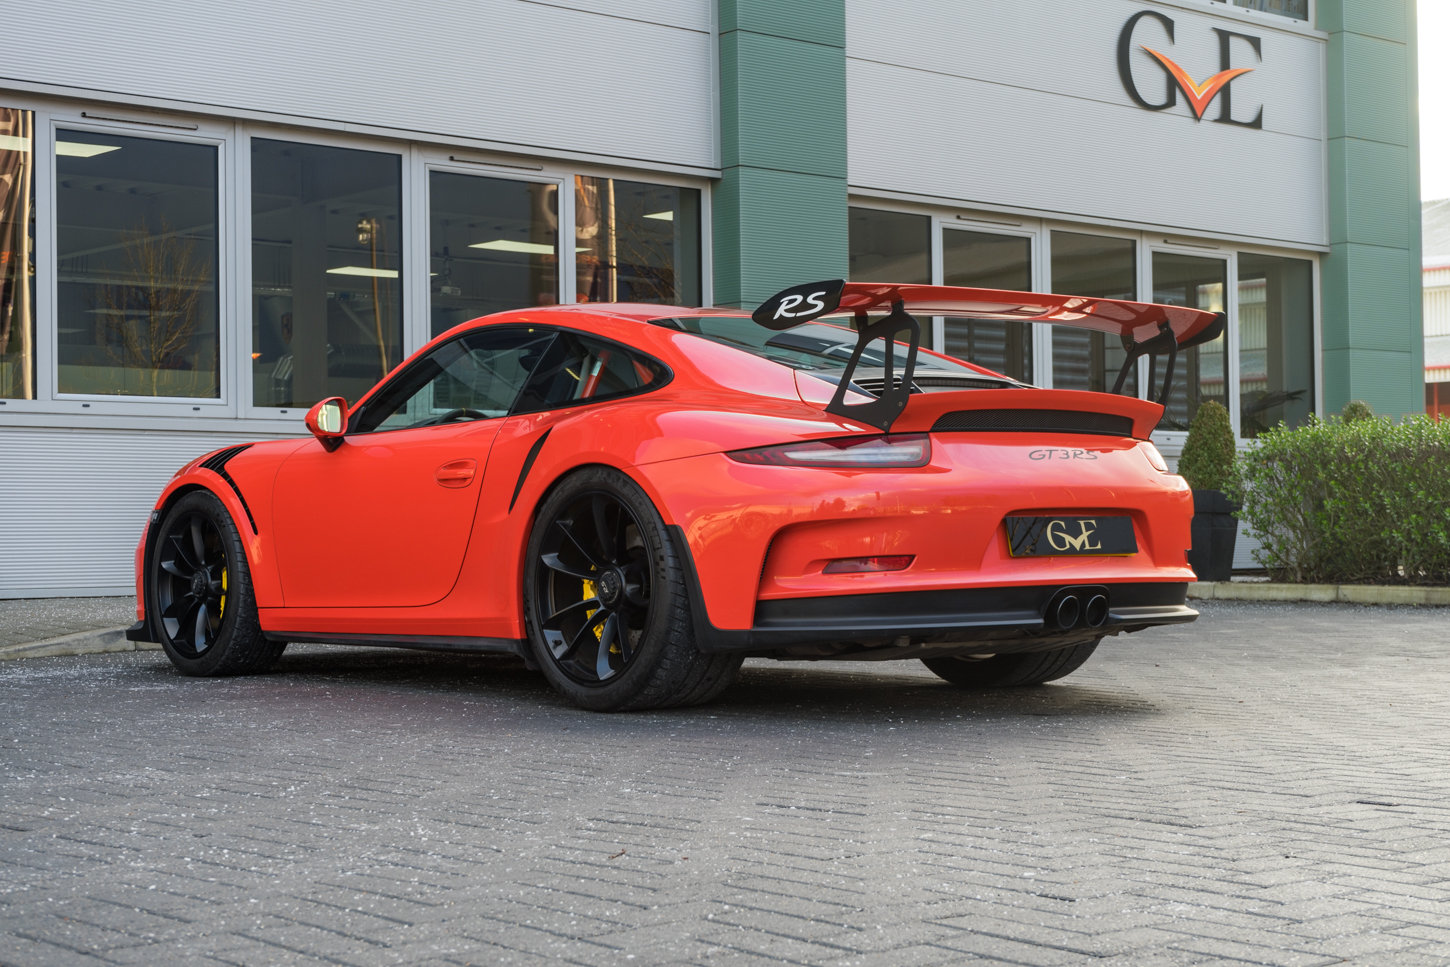 2016 Porsche 991.1 GT3 RS | LHD | HIGH SPEC INC. PCCB For Sale (picture 3 of 6)